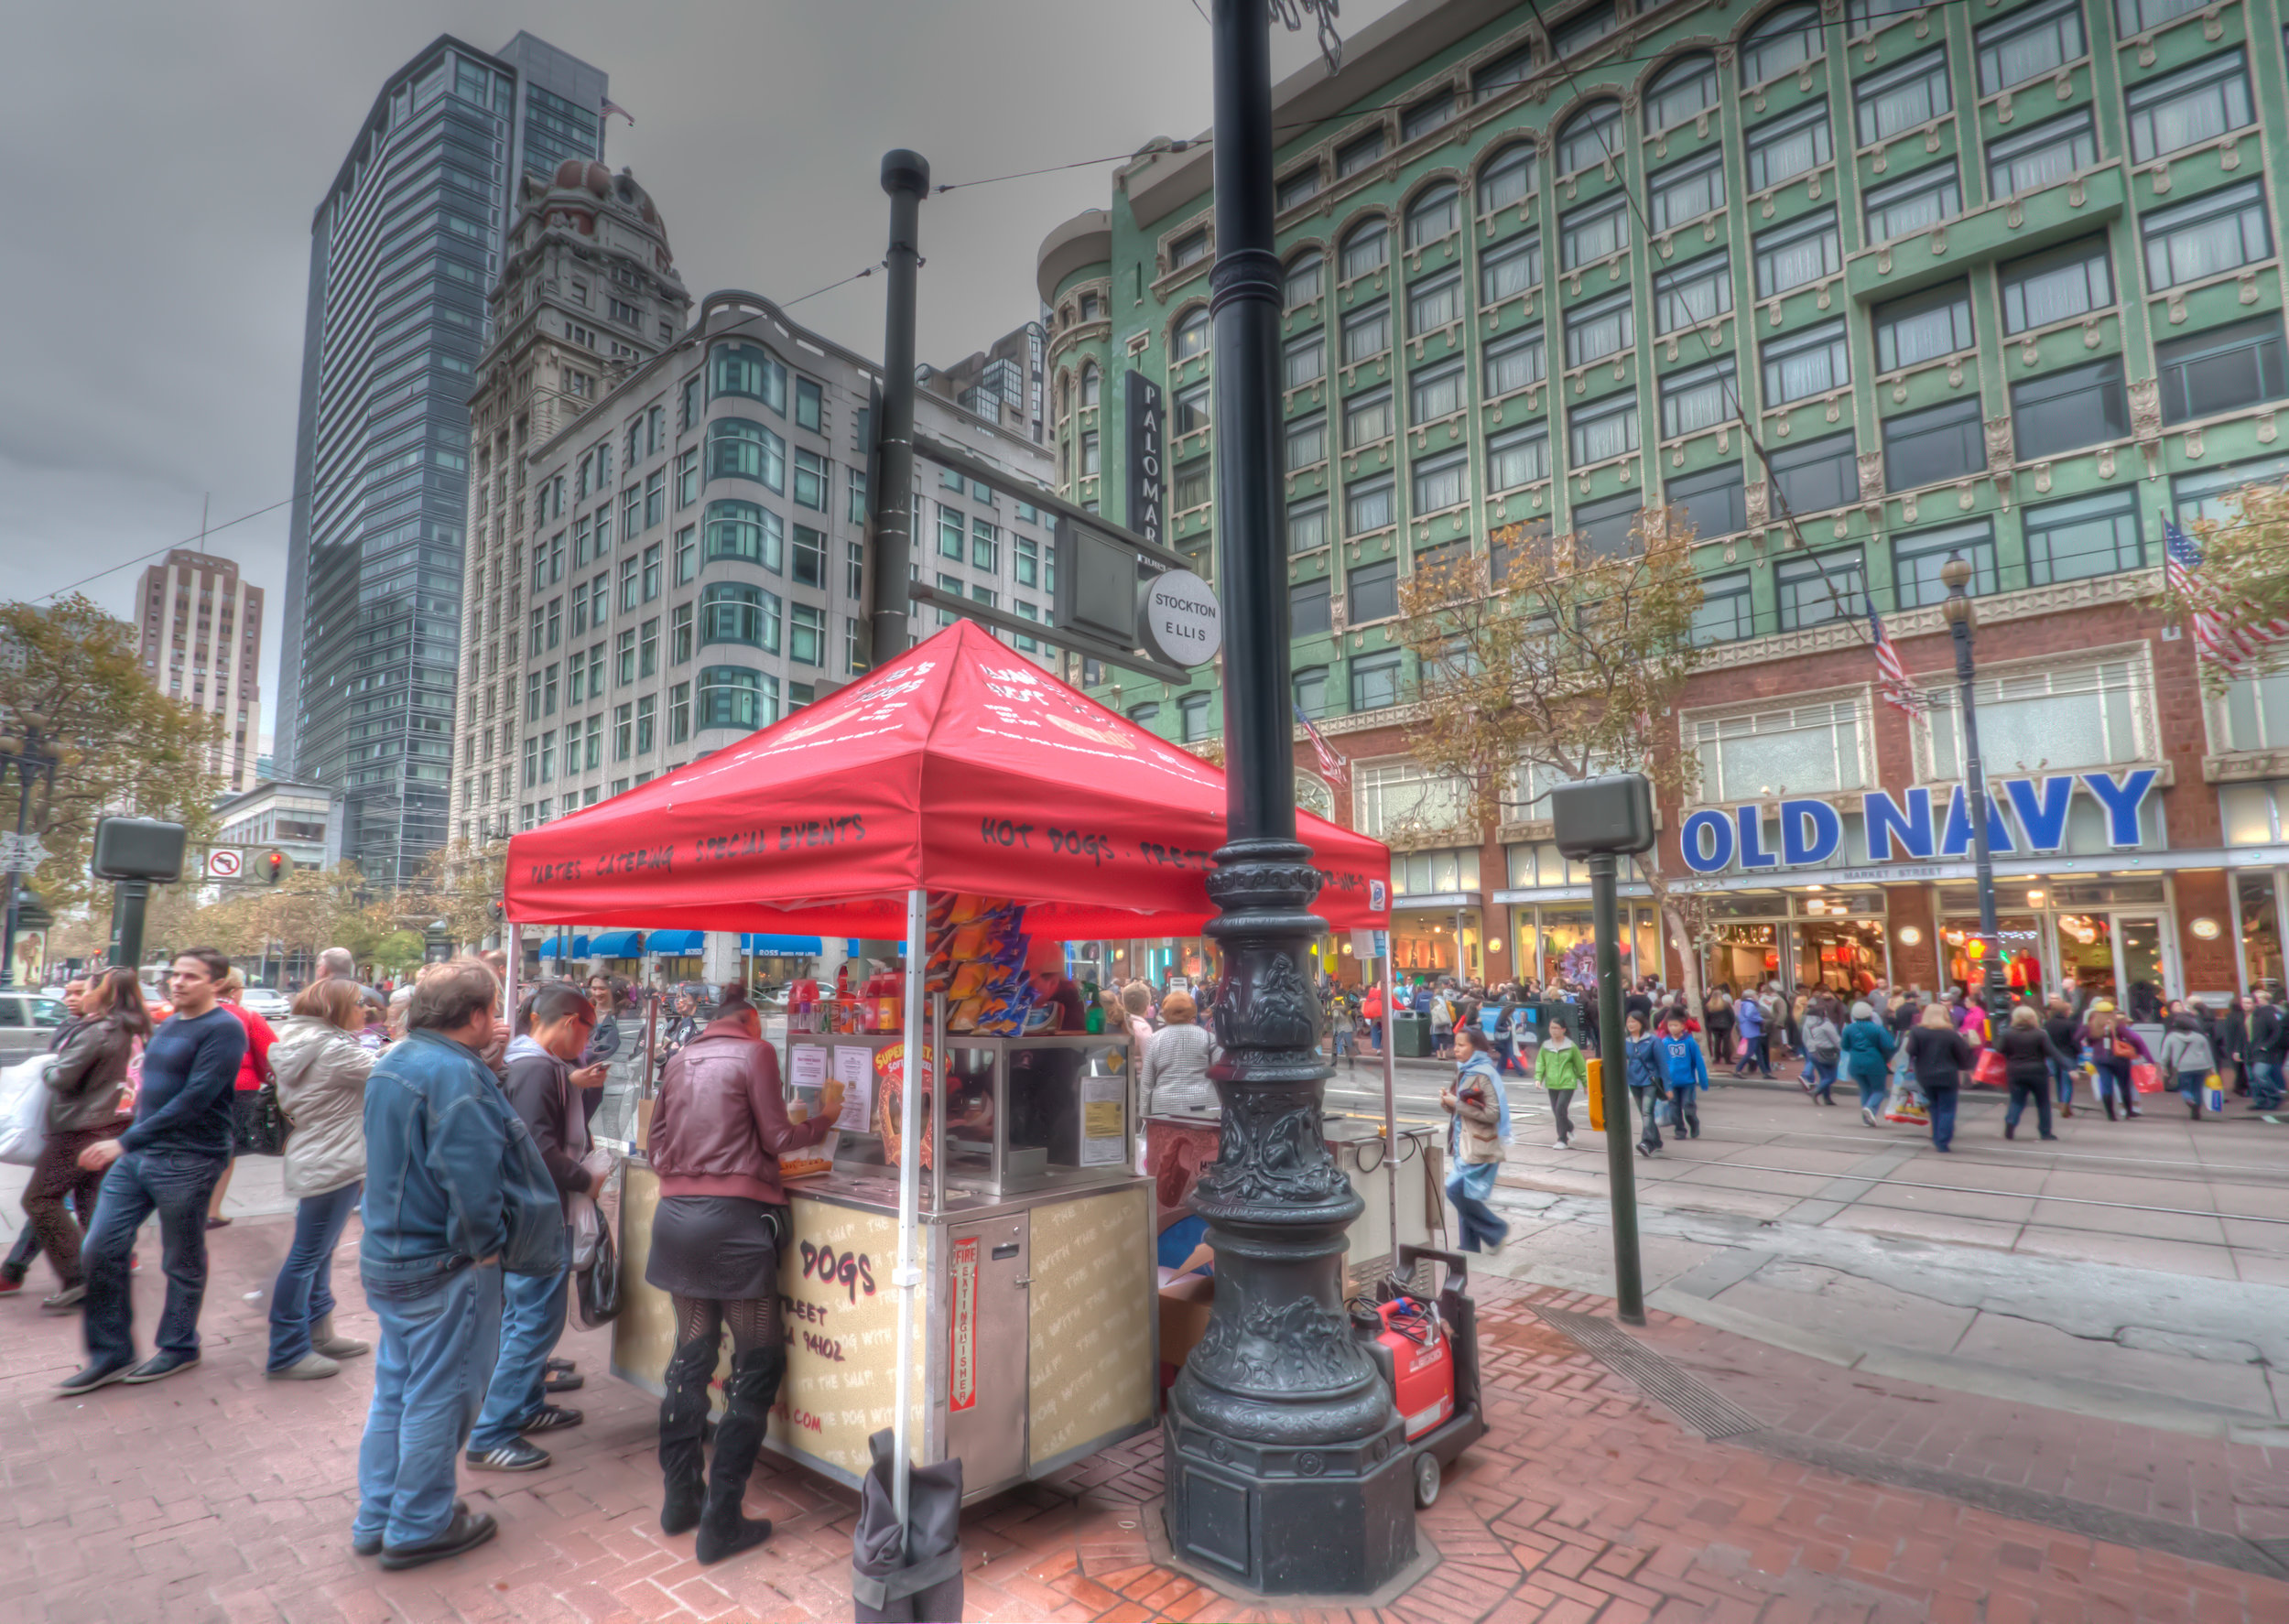 About Us - Started in 1983 by Cathy Schoop, Annie's Hot Dogs had some of the first food carts on the streets of San Francisco.